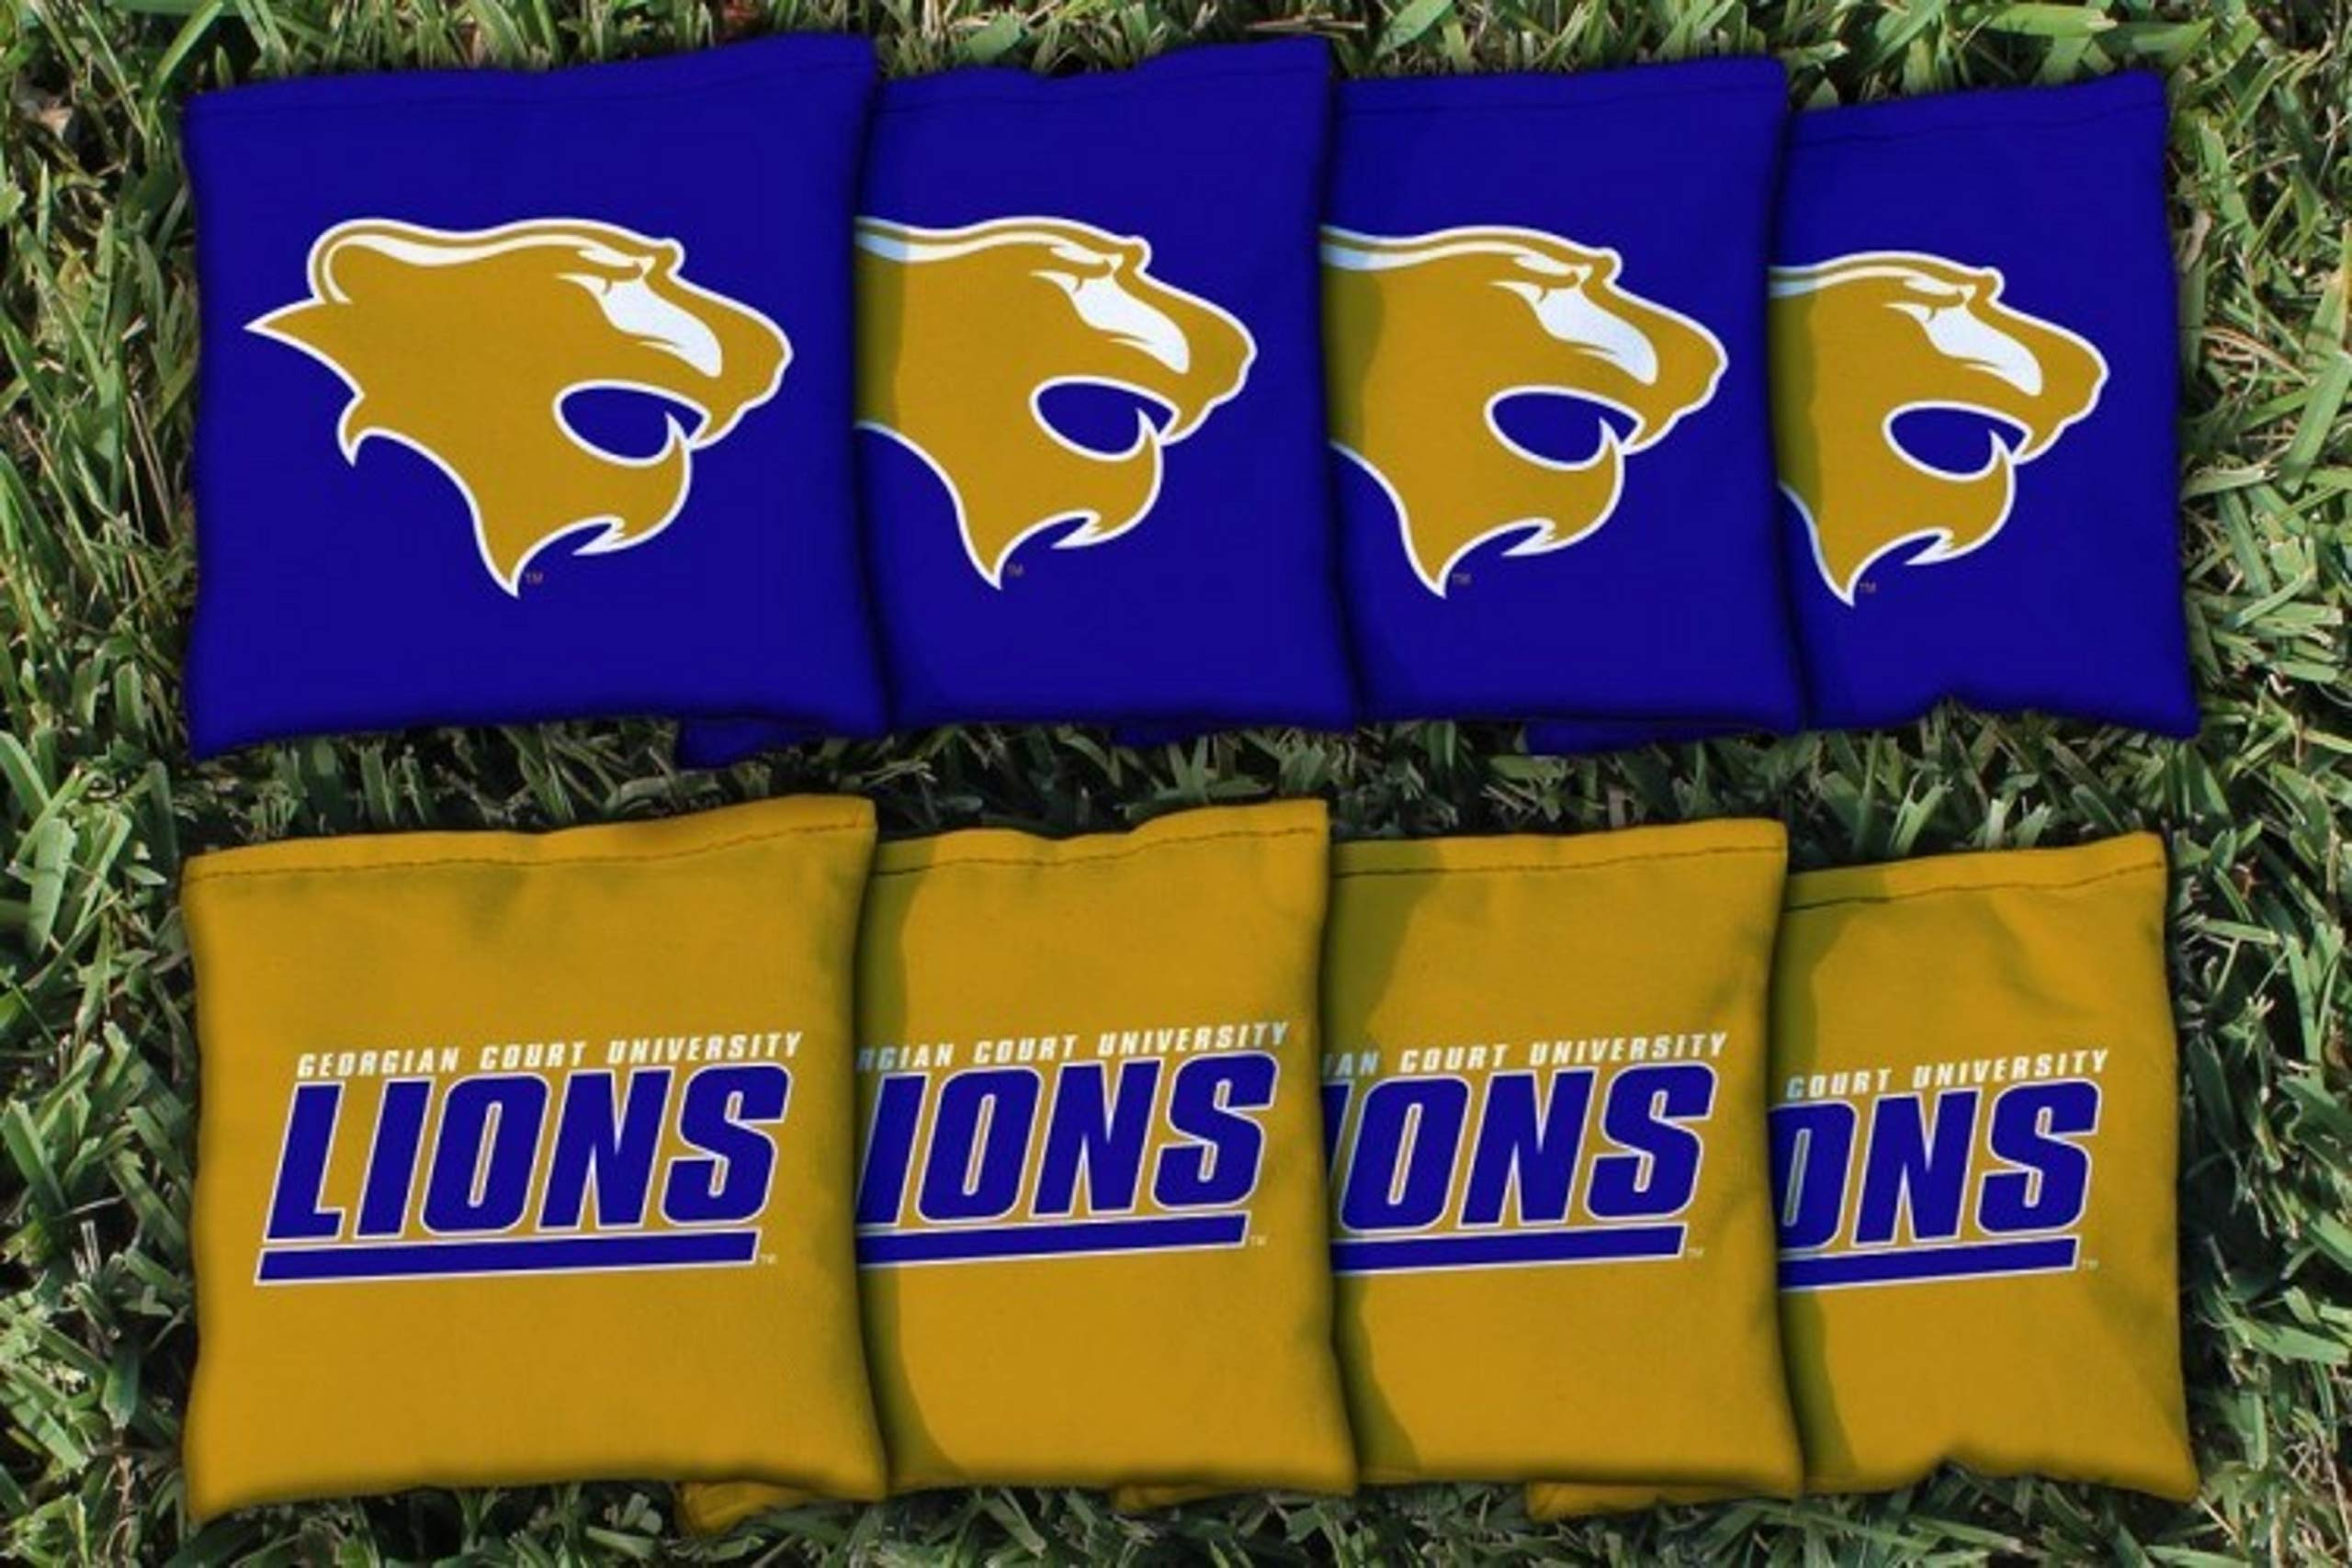 Victory Tailgate NCAA Collegiate Regulation Cornhole Game Bag Set (8 Bags Included, Corn-Filled) - Georgian Court Lions by Victory Tailgate